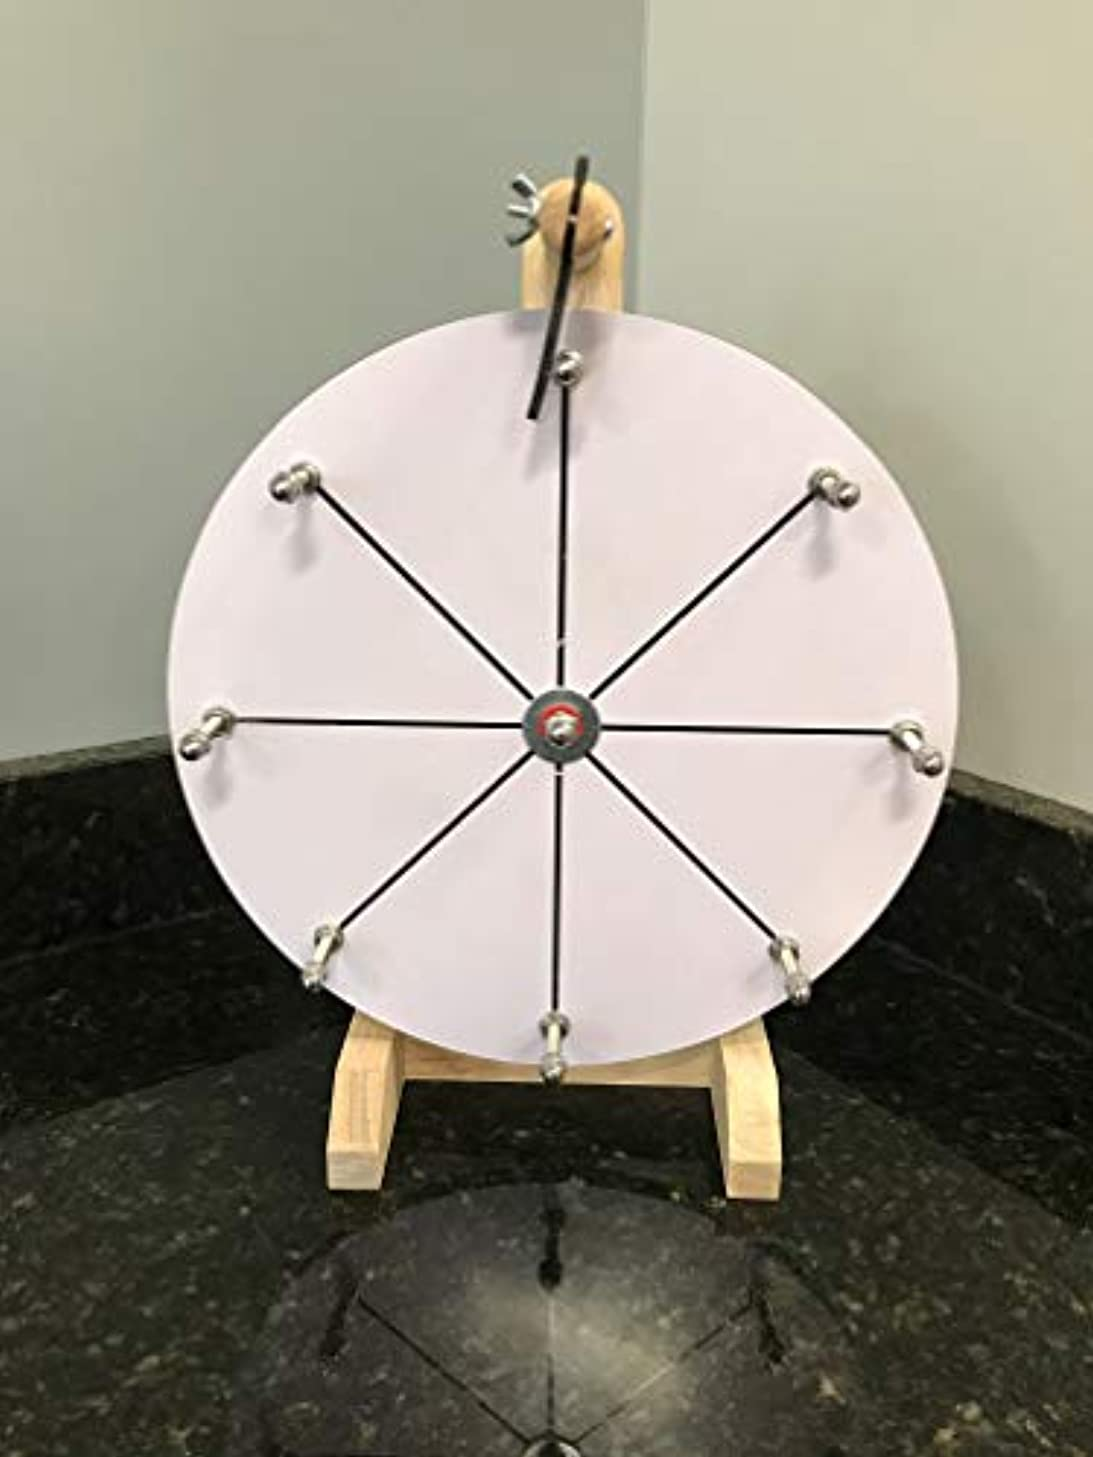 Kids Mini 12 Inch Prize Wheel Game with 8 Segment Dry Erase Wood Design for Fortune Raffle Spin Game